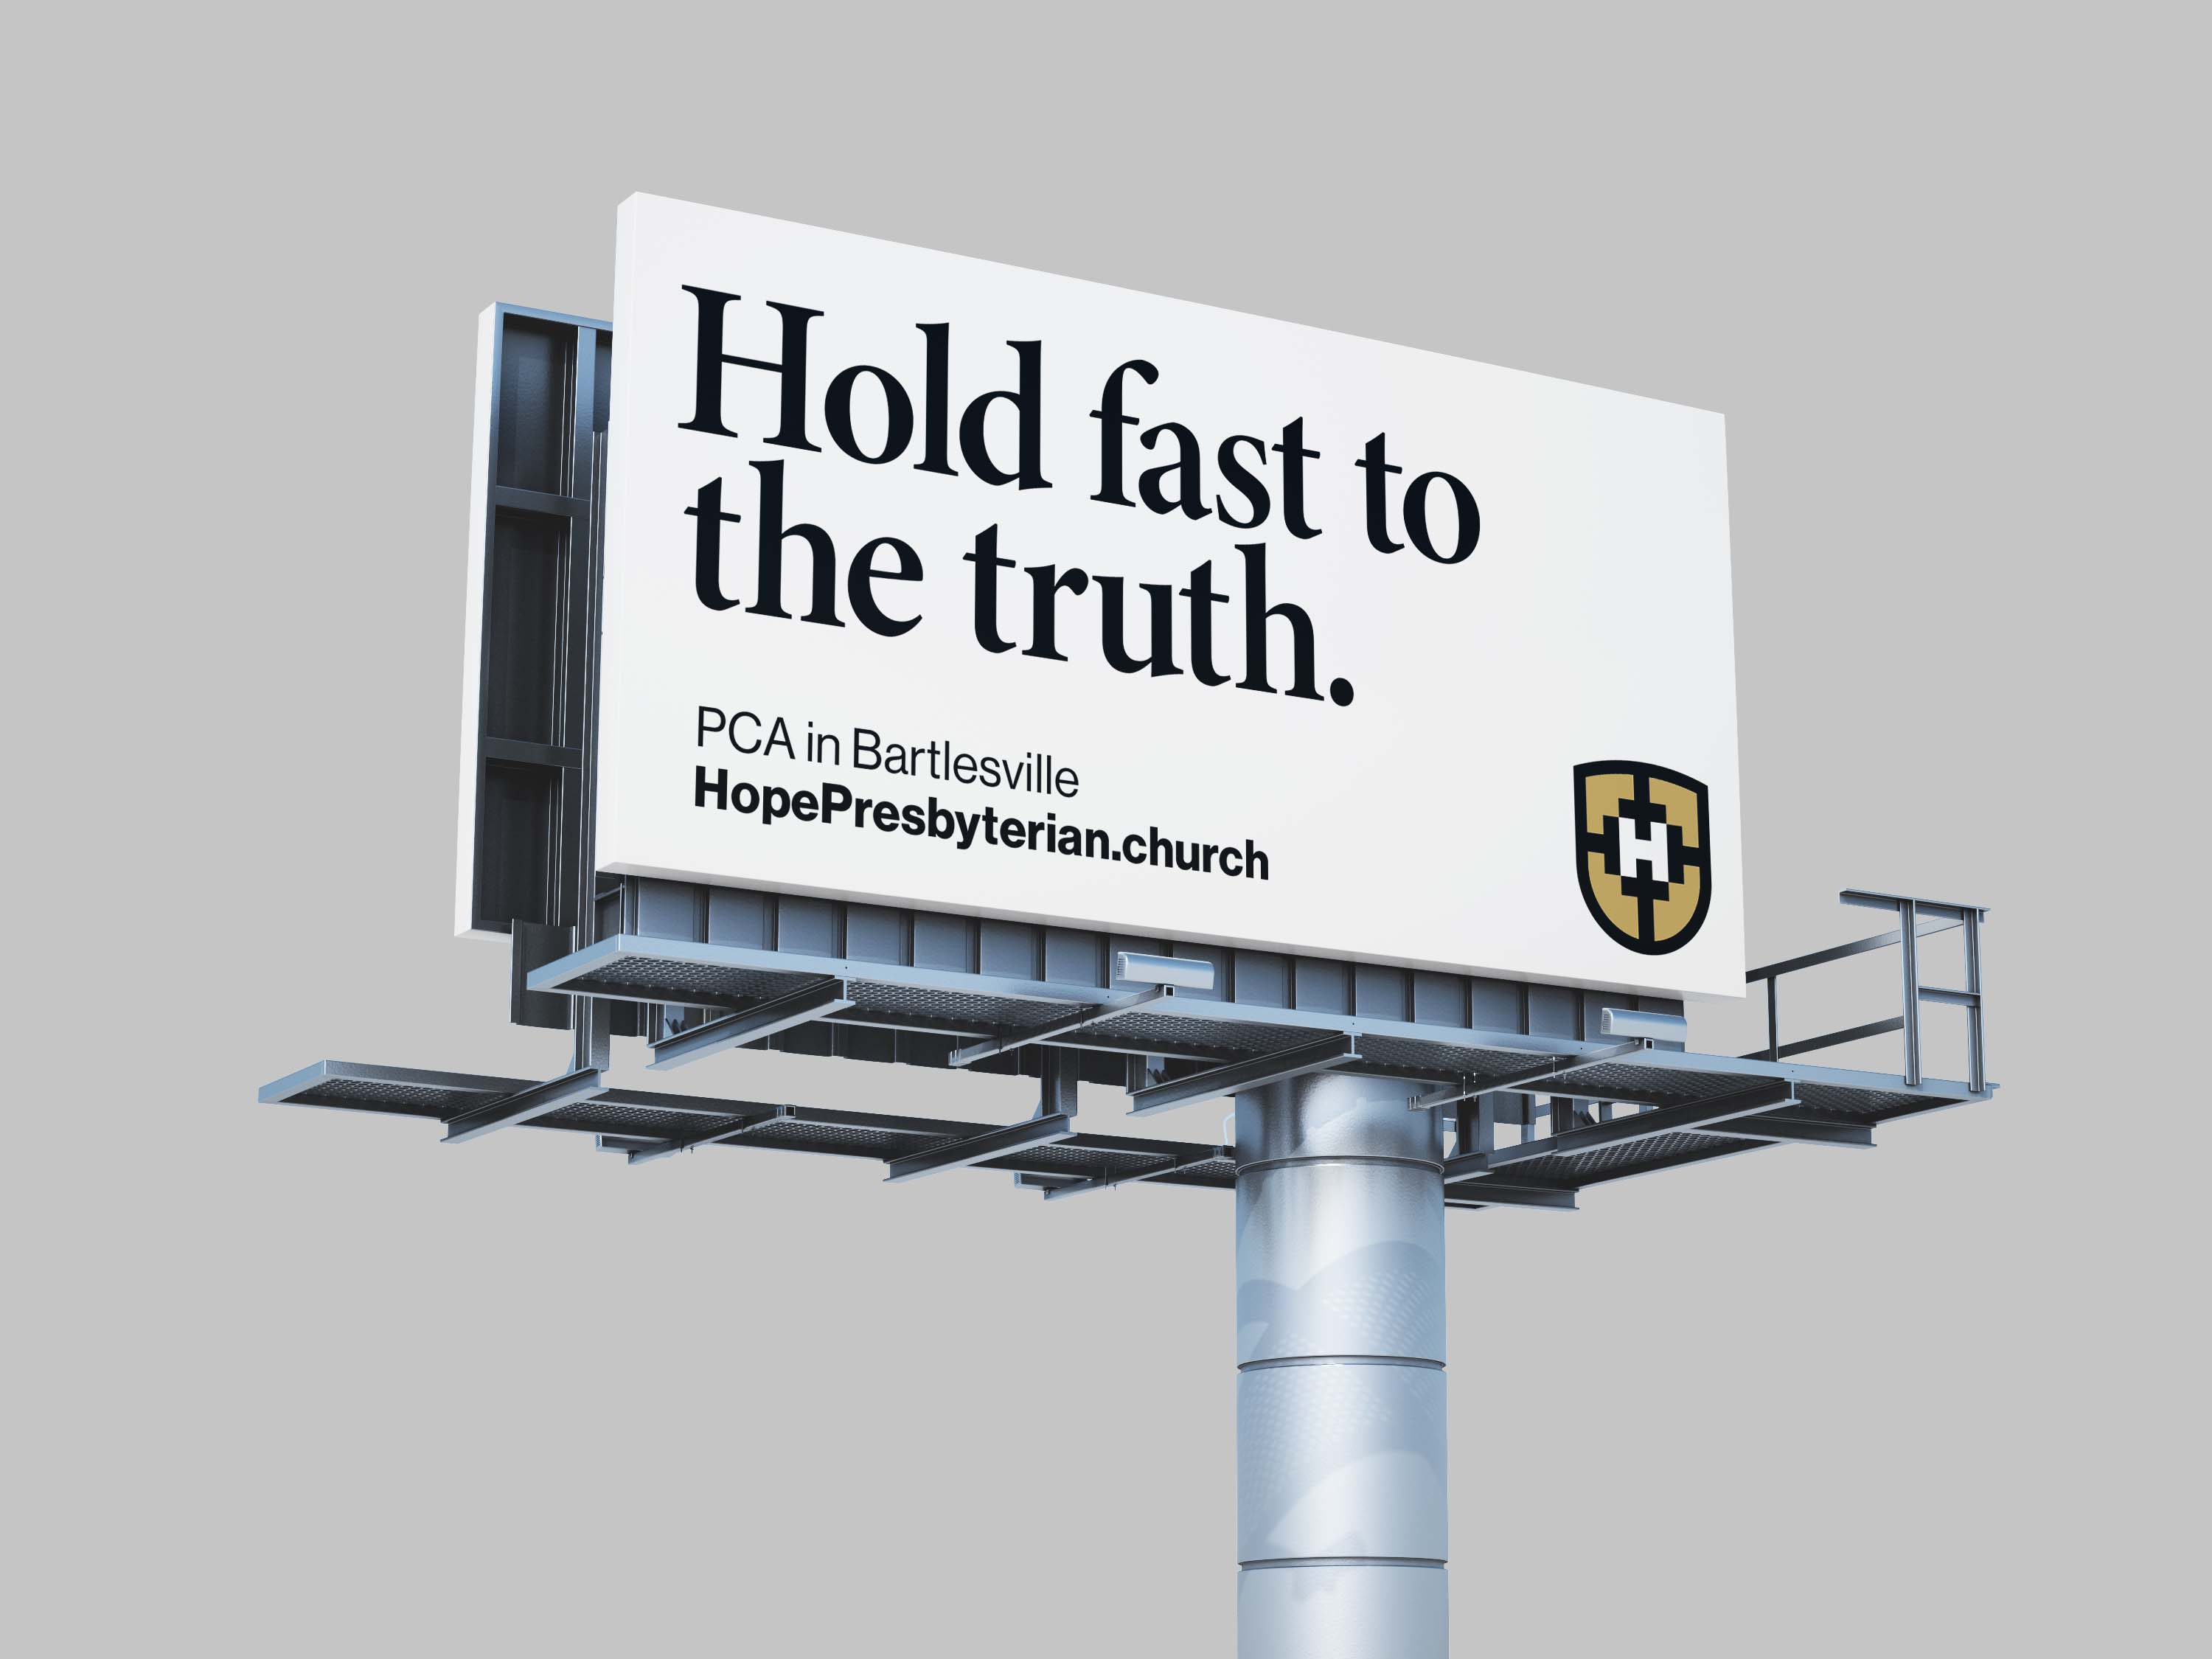 Hold fast to the truth.